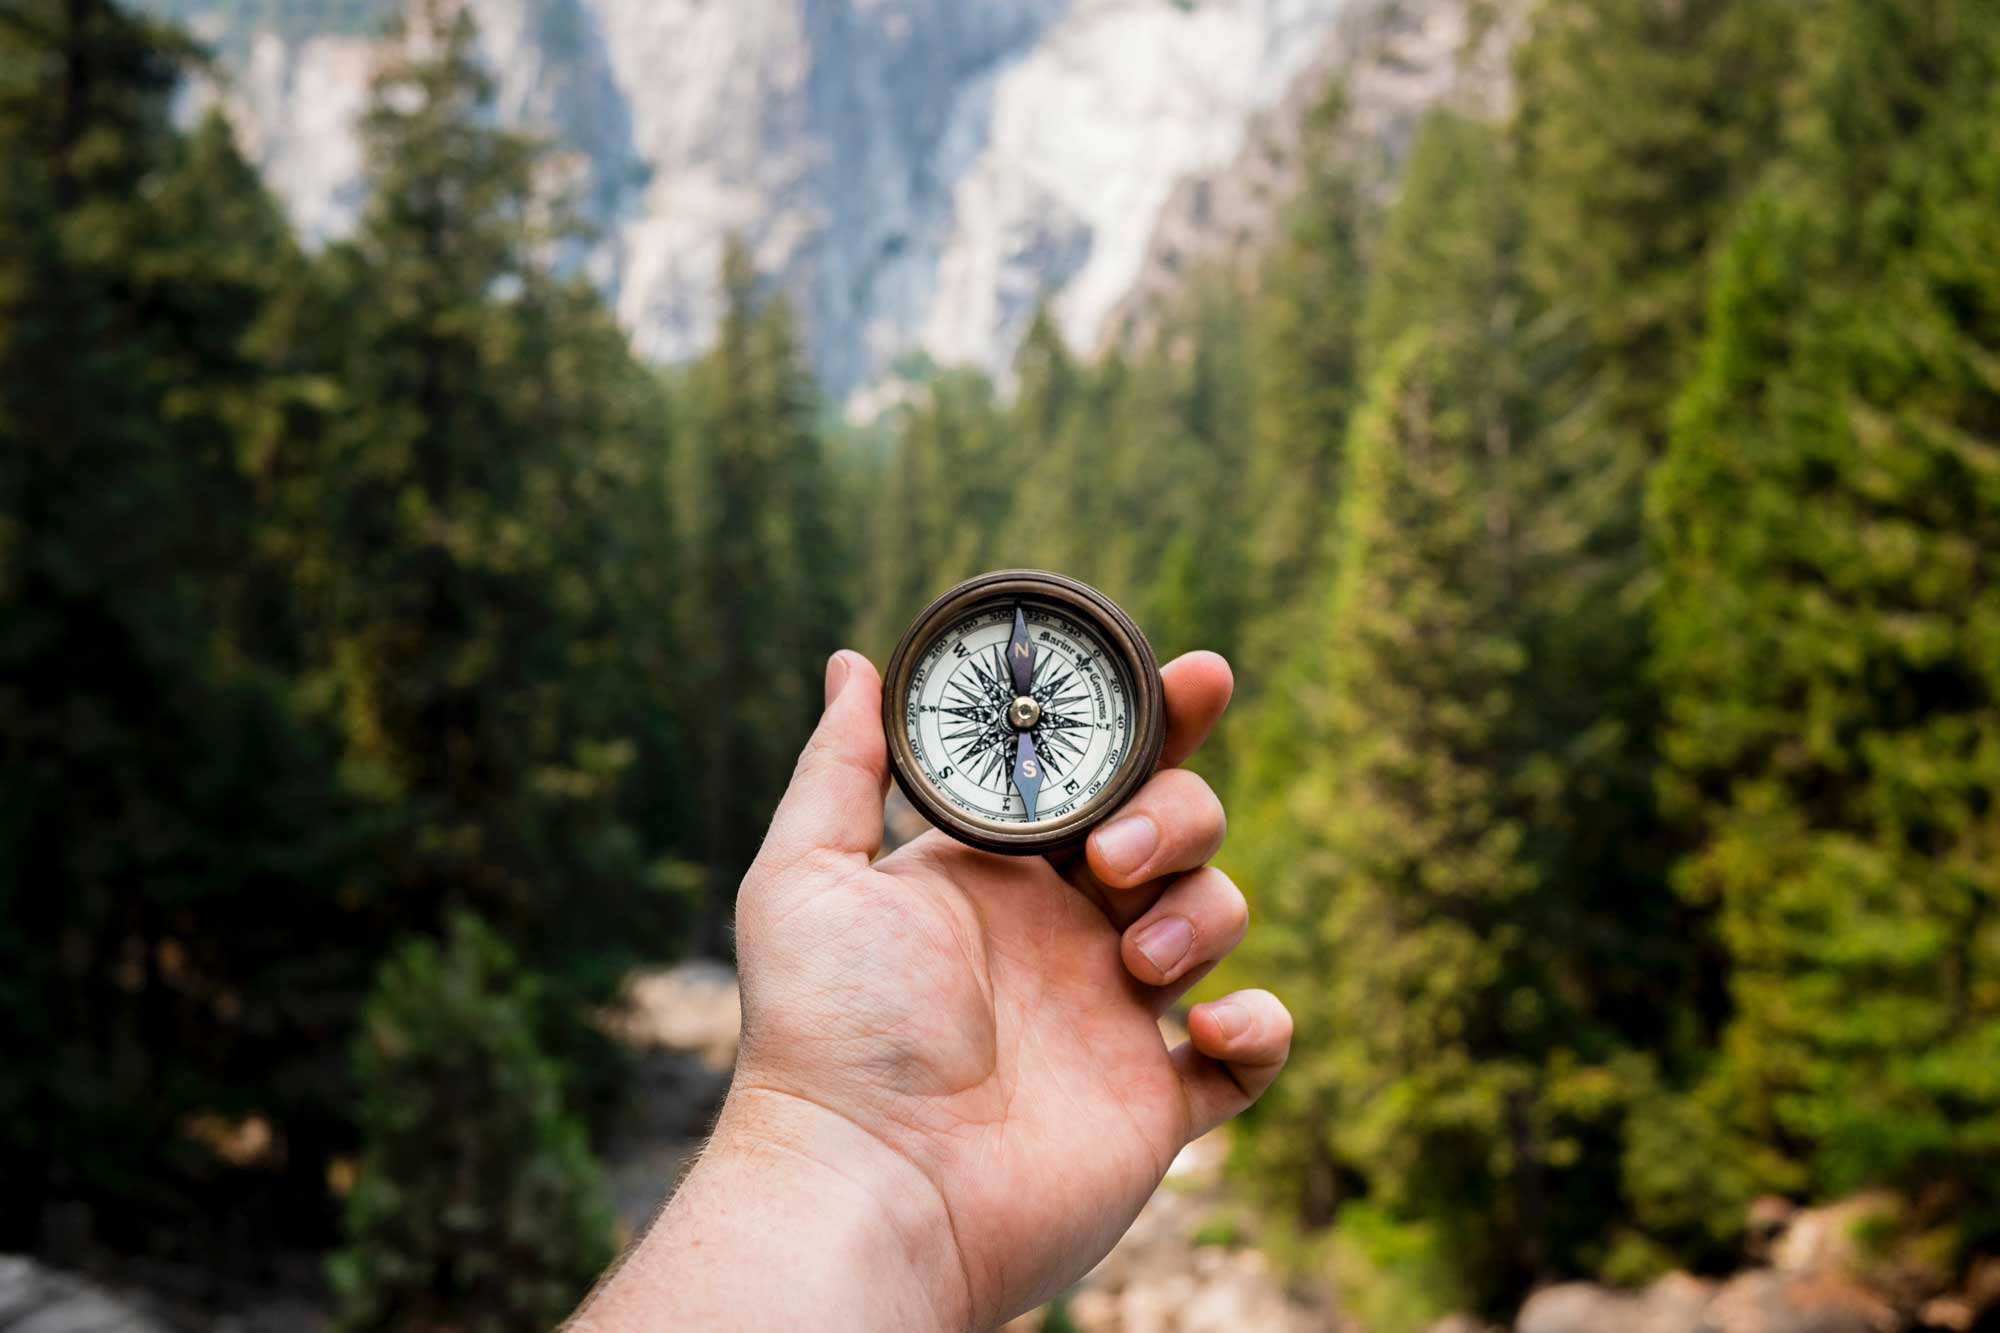 A compass held by a person in a forest.